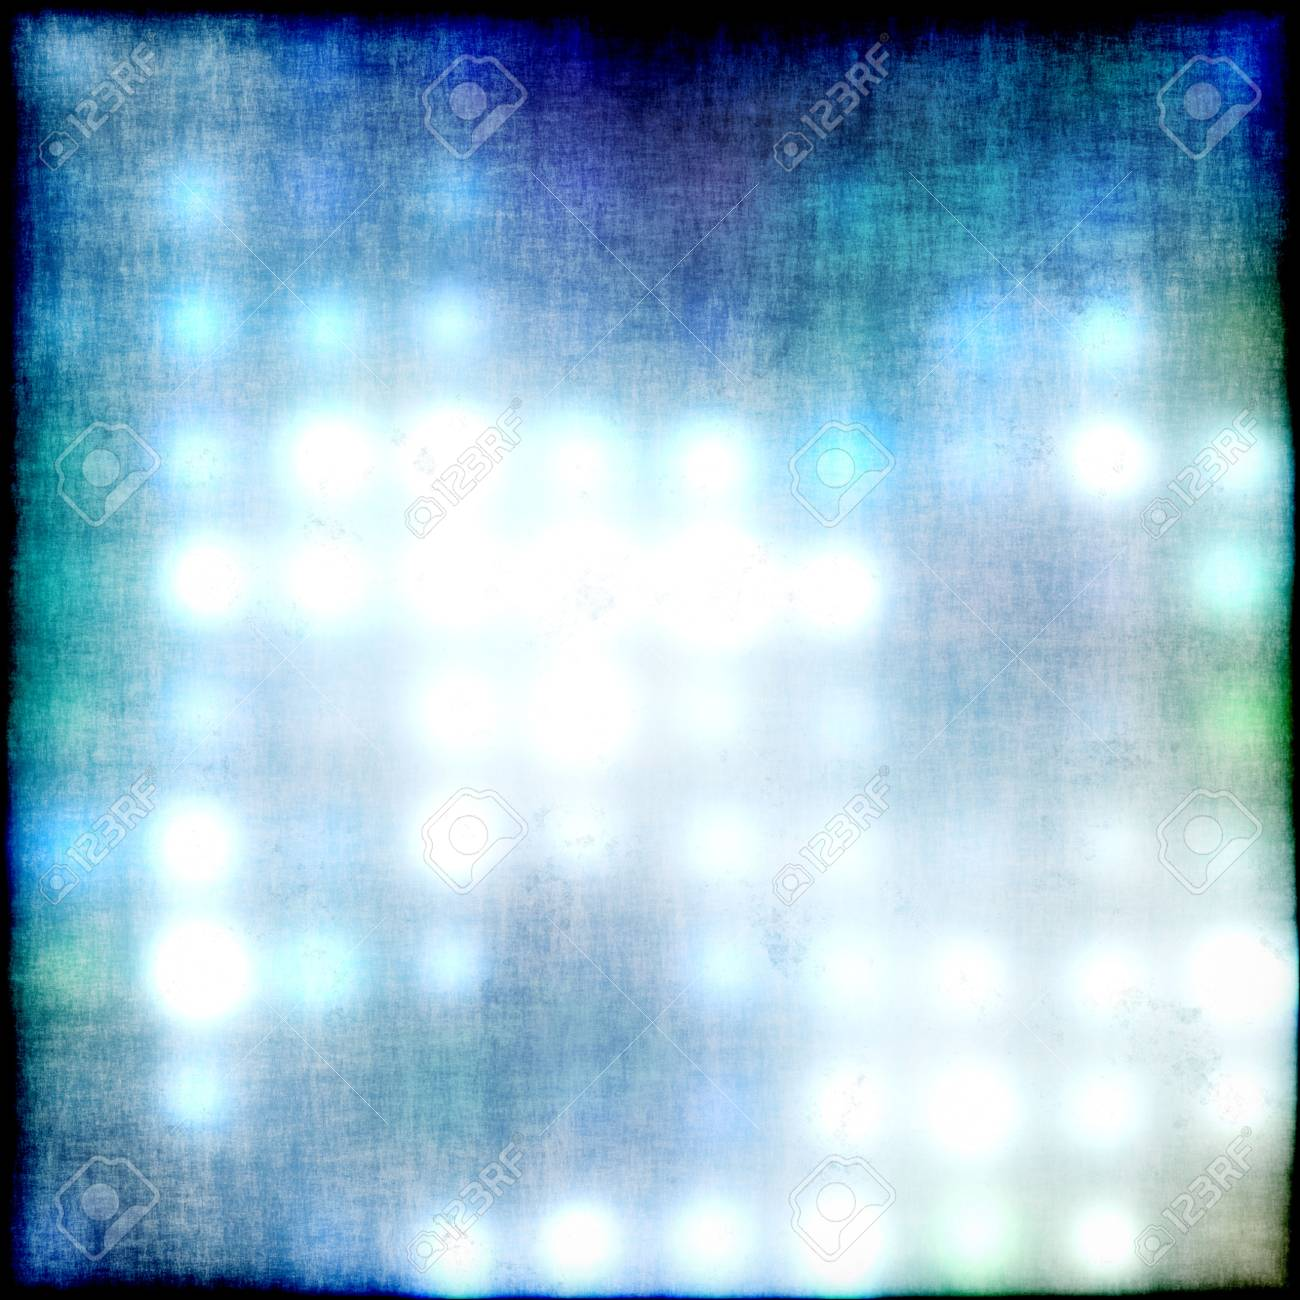 background paper Textures and Backgrounds grungy dots mixed colors Stock Photo - 18501346